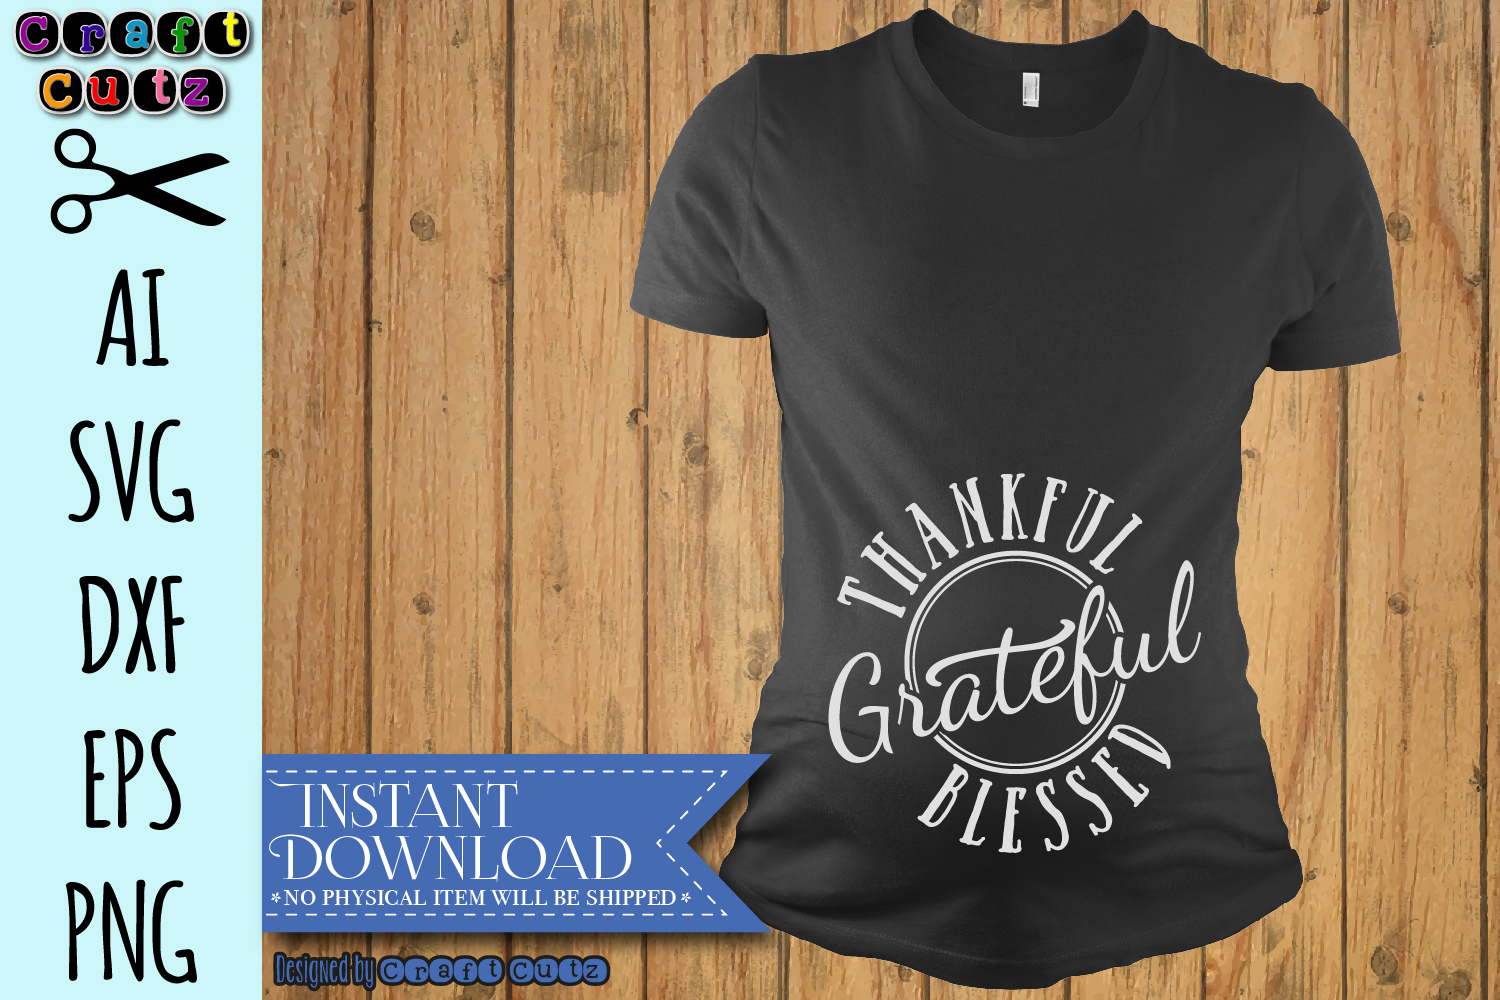 Thanksgiving Maternity SVG, Thankful Grateful Blessed SVG example image 3